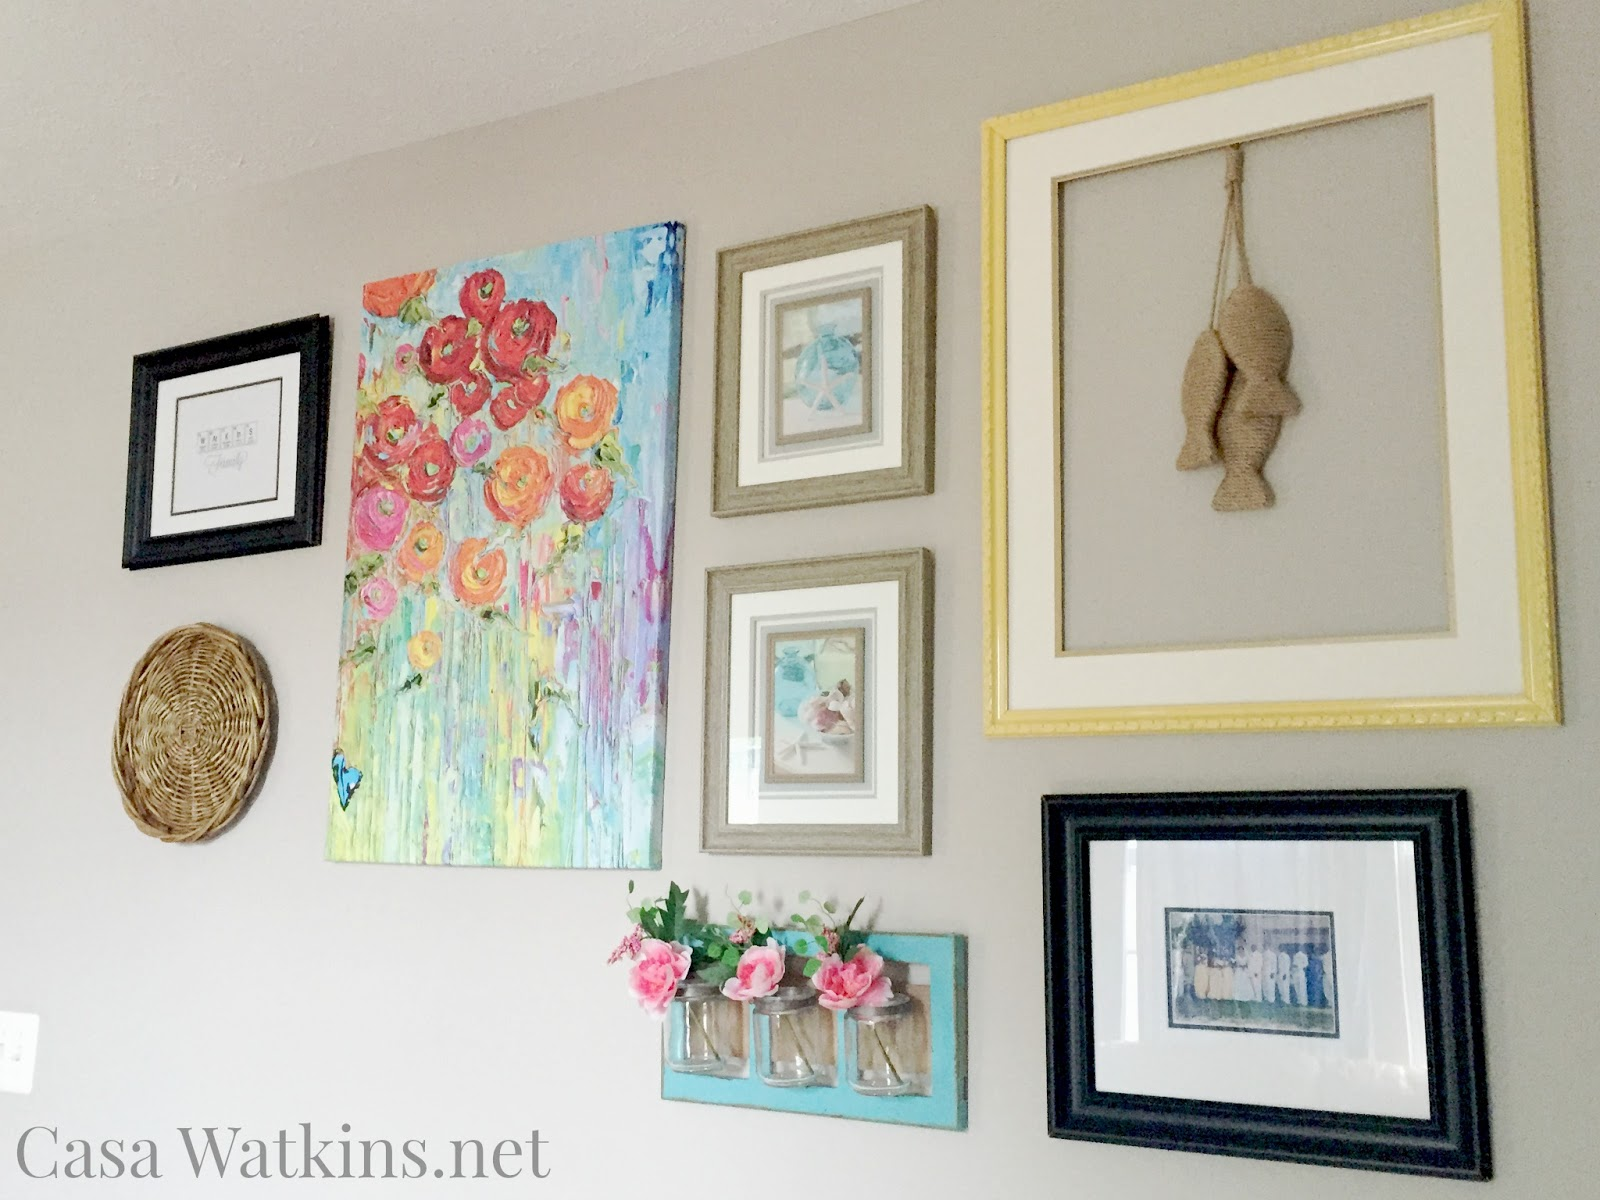 Color of art gallery walls - Color Is A Must Here In The Casa Having A Neutral Greige Wall Color Makes Any Color Item Pop Right Off The Wall I Came Across This Beautiful Canvas Art At